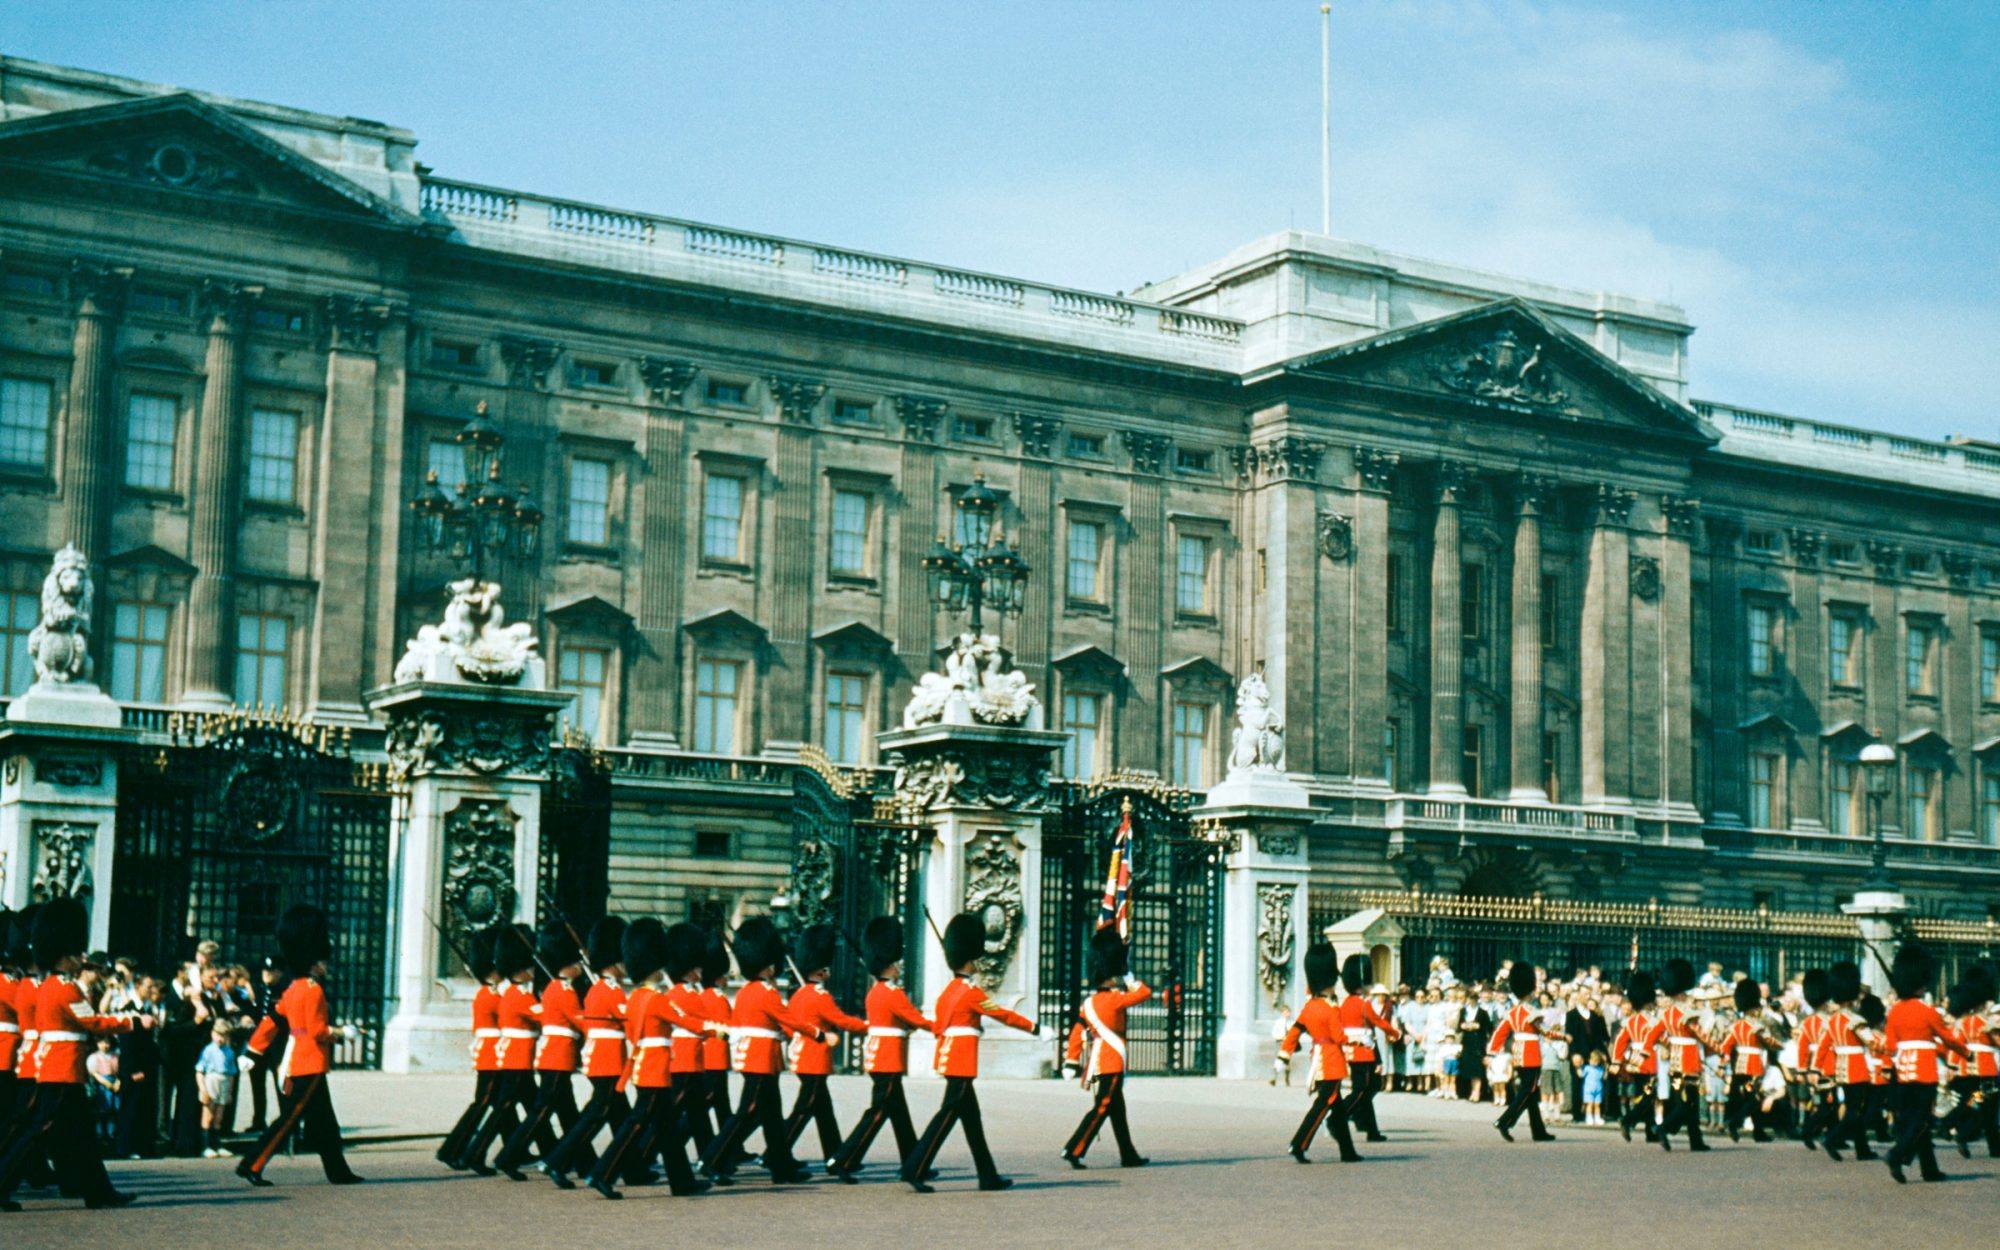 Secrets of Buckingham Palace